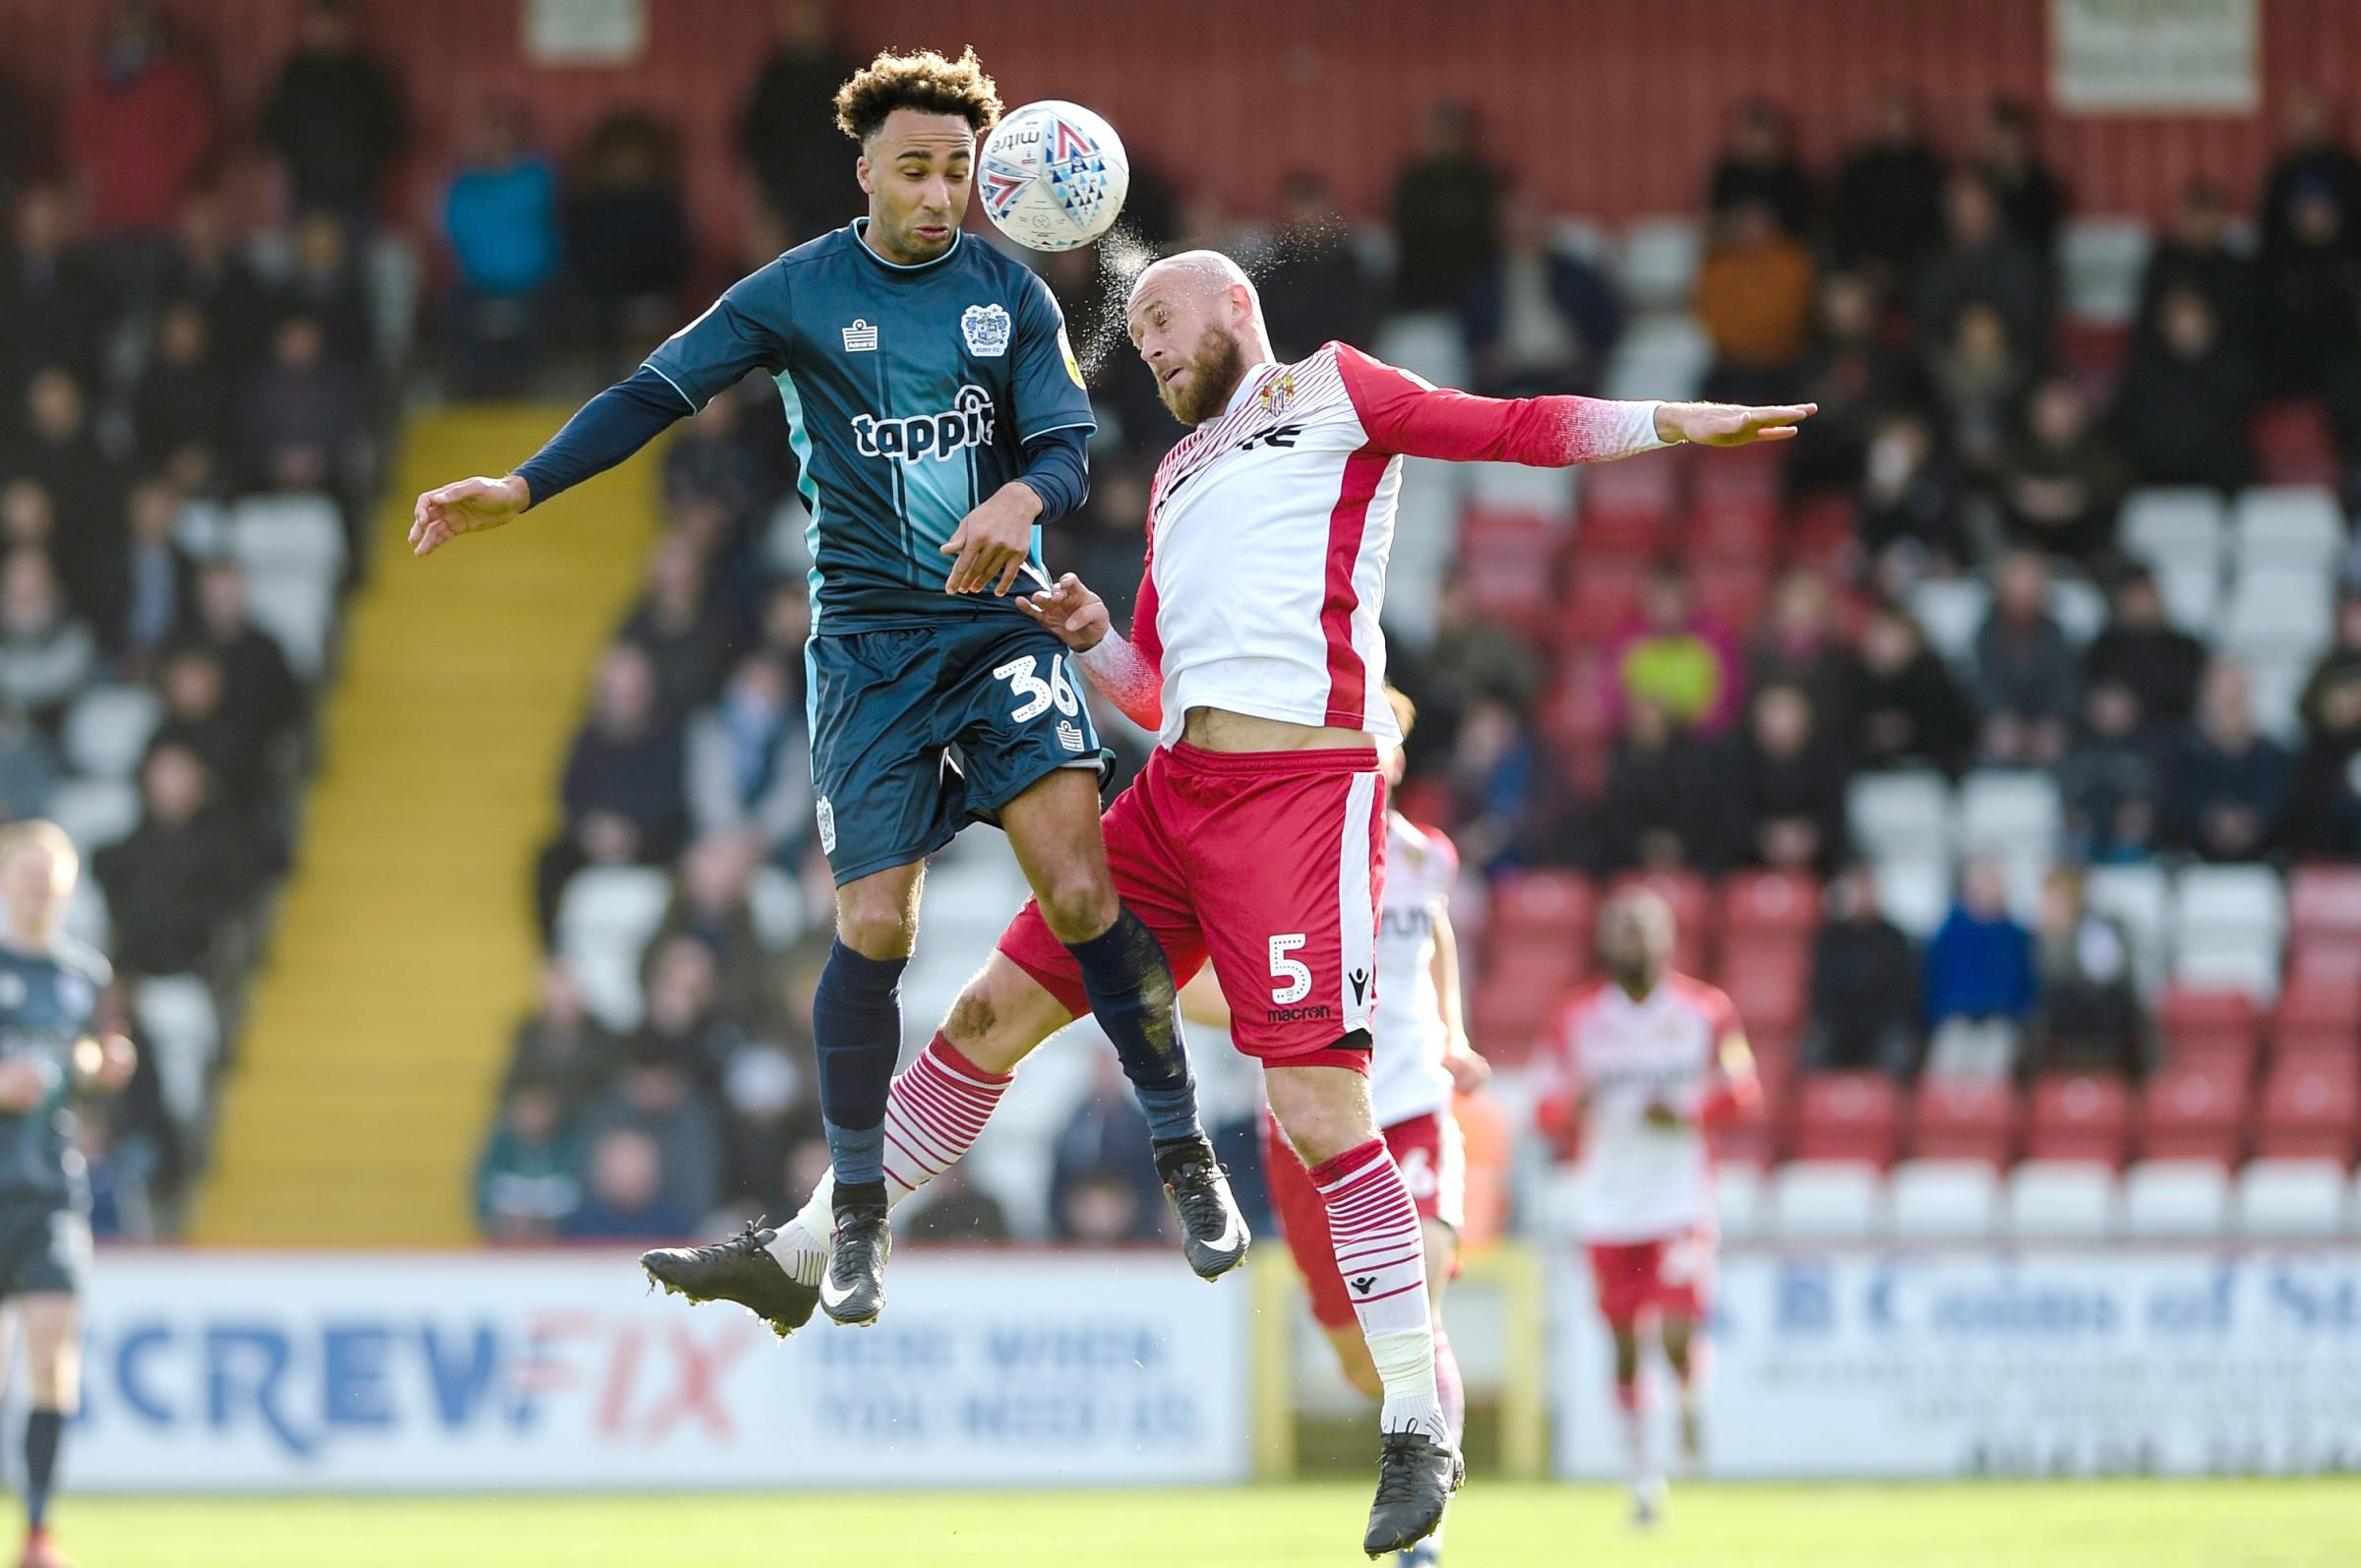 MATCH REPORT AND PLAYER RATINGS: Stevenage 0 Bury 1